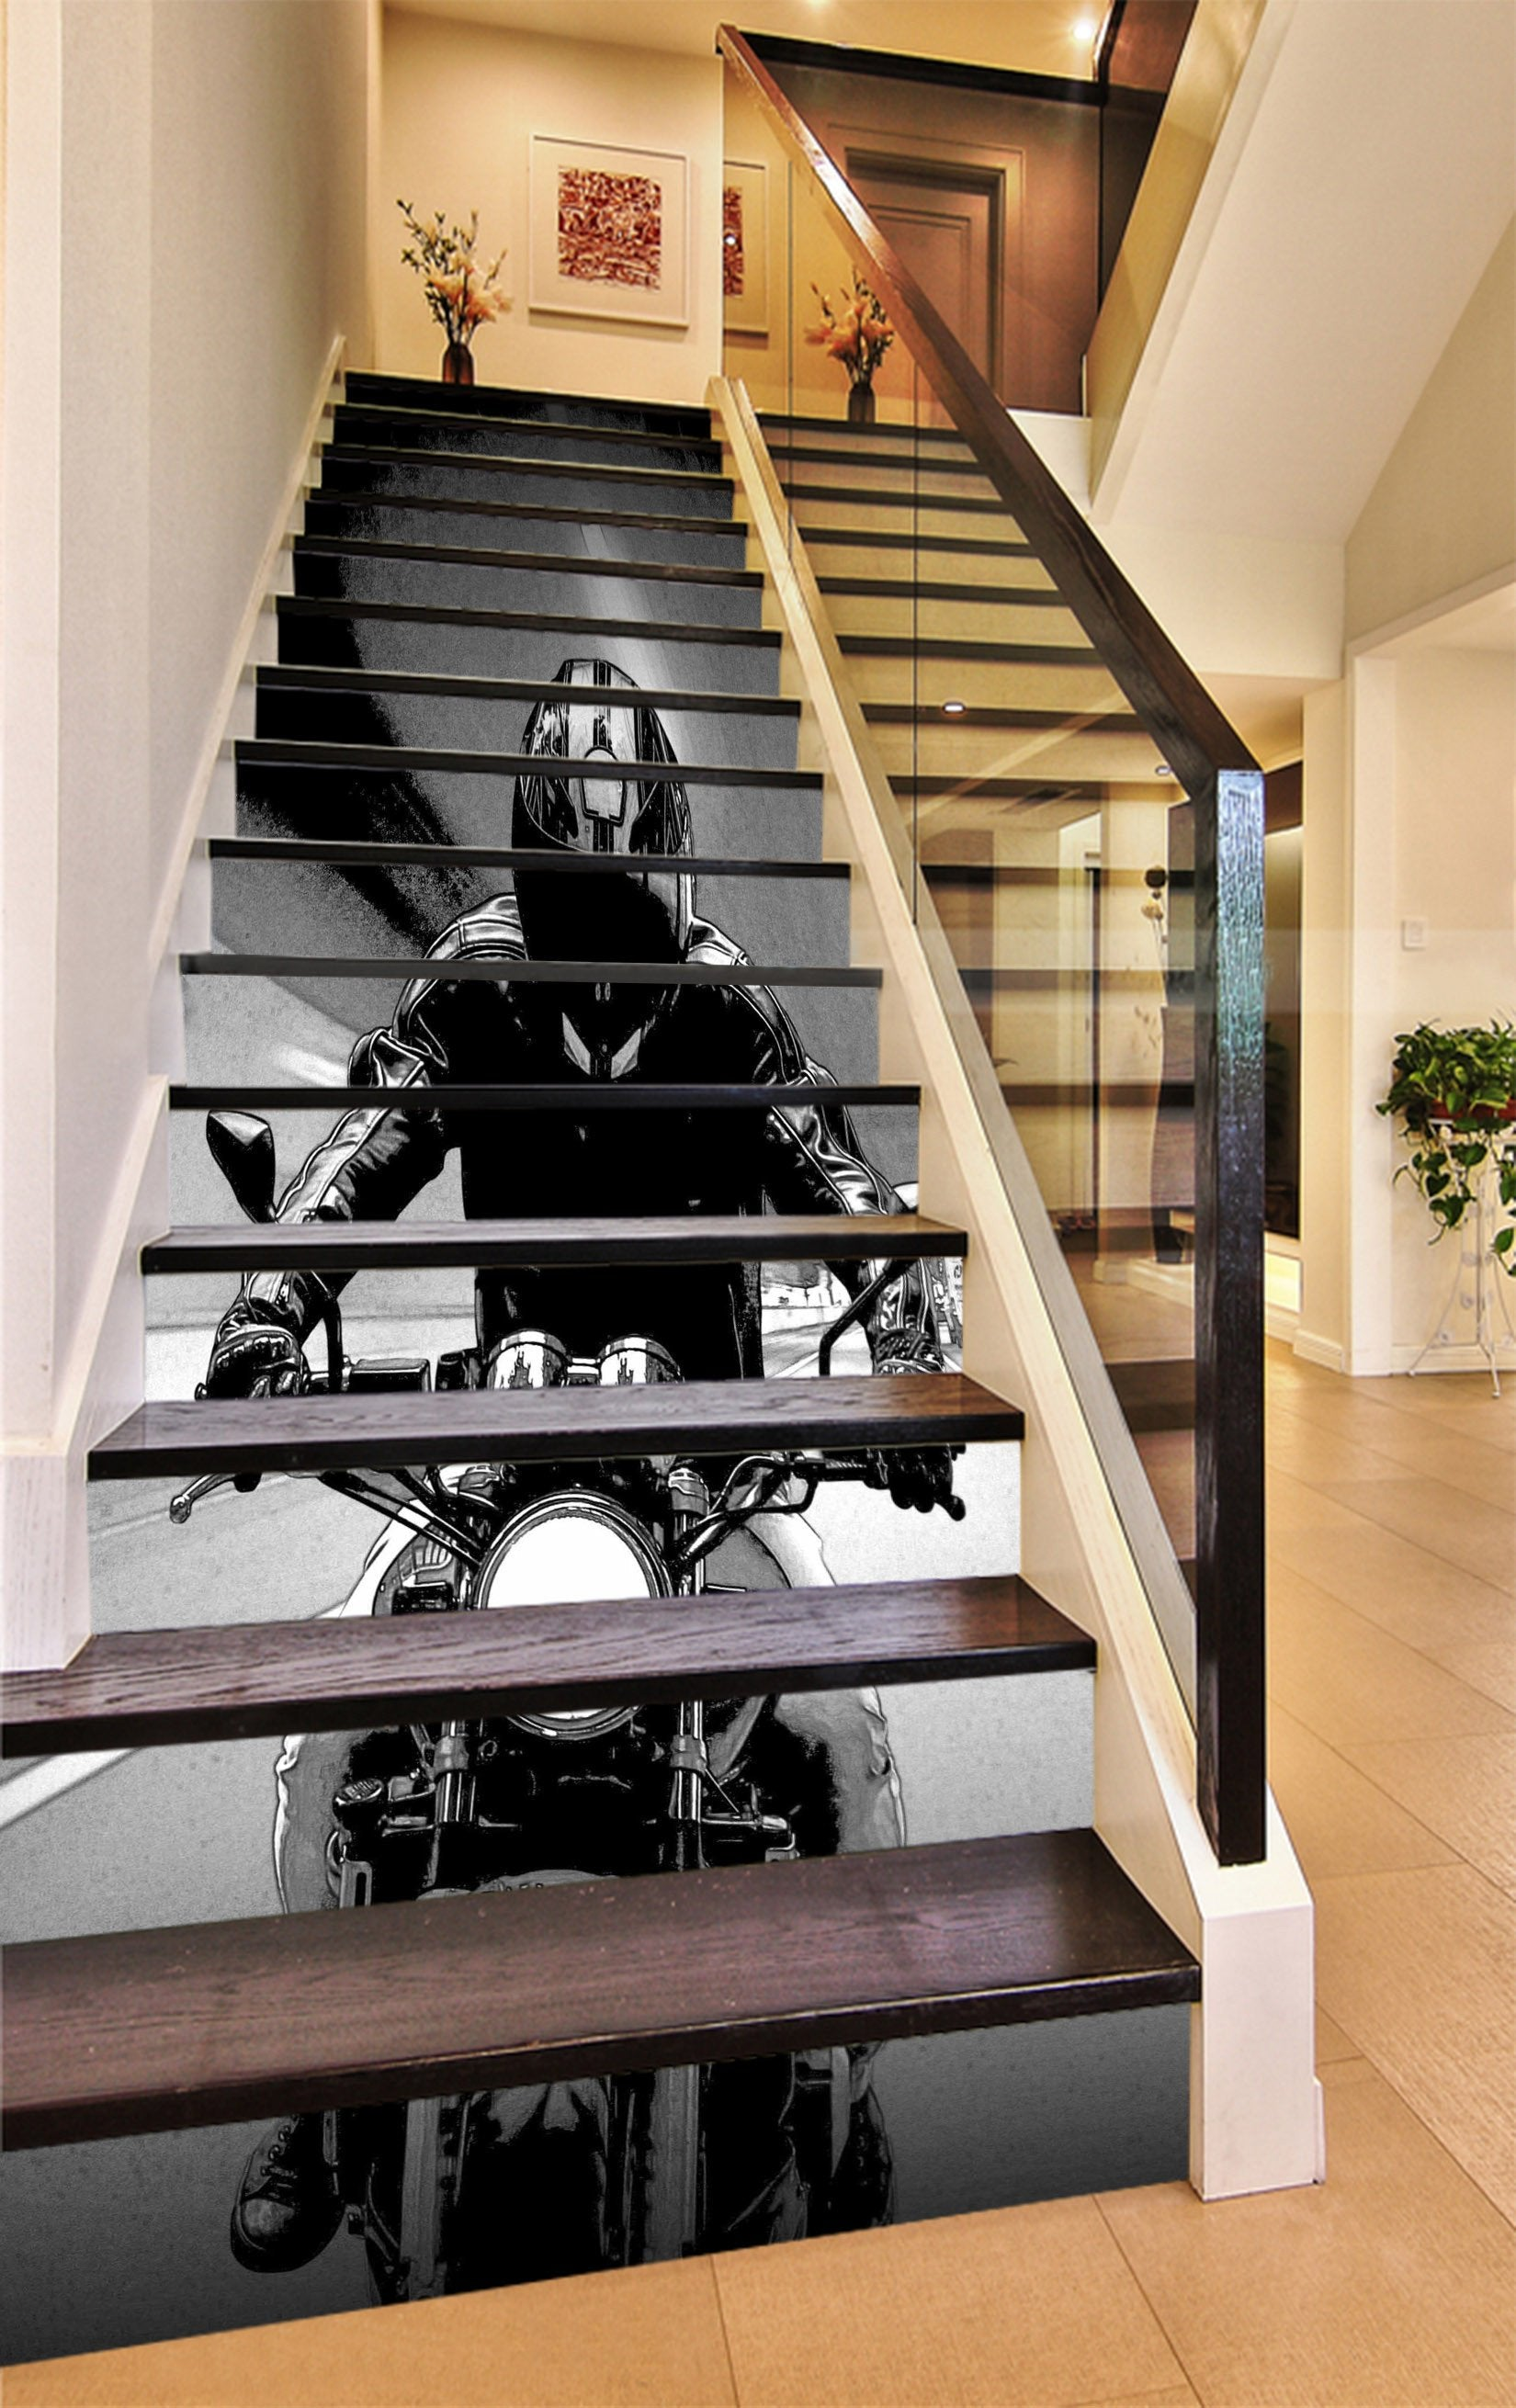 3D Motorcycle Rider 1152 Stair Risers Wallpaper AJ Wallpaper